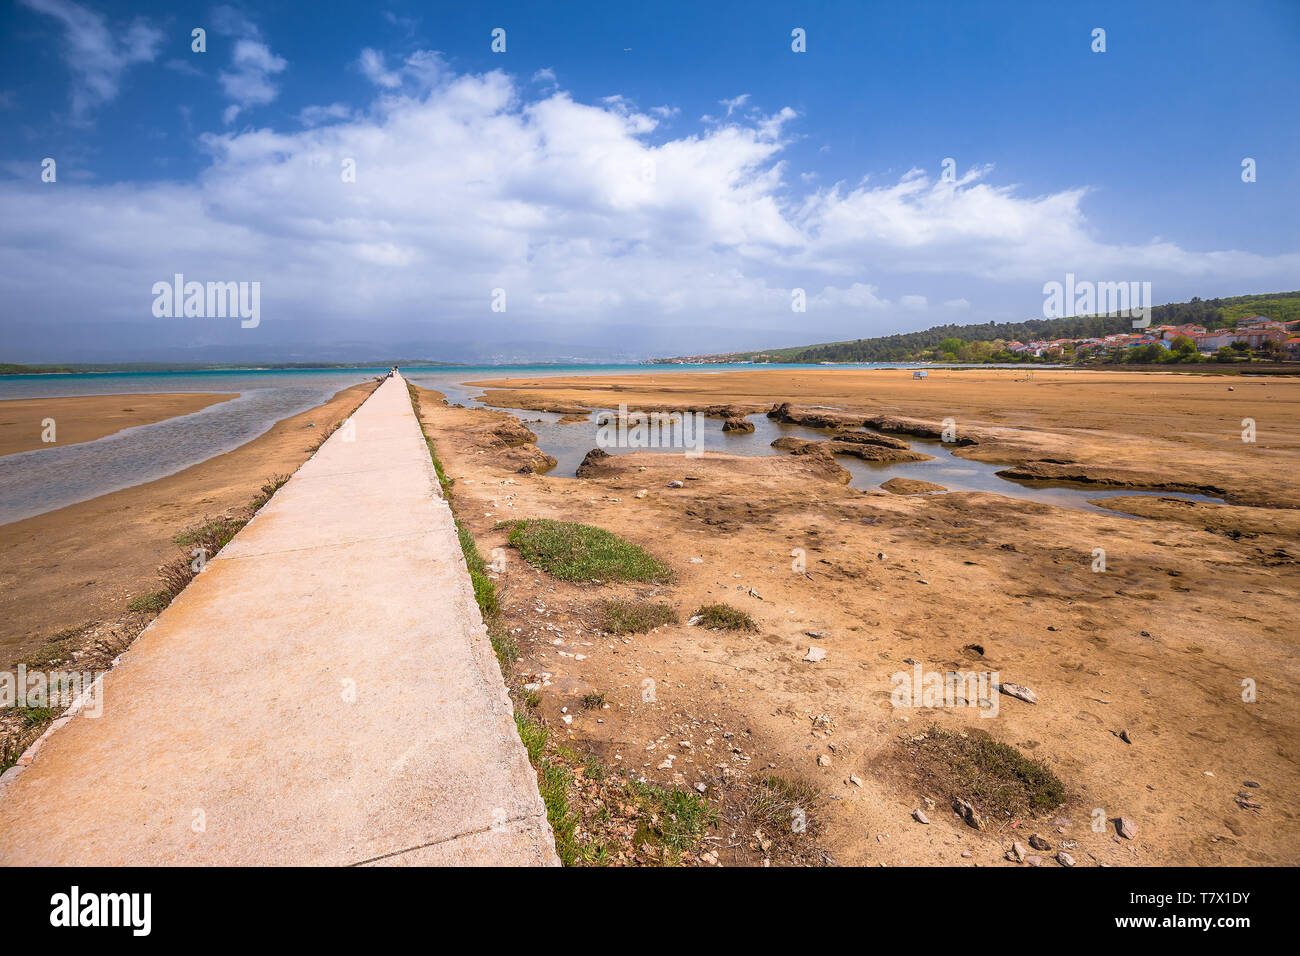 Healthy mud beach in Cizici Soline on Krk island, Kvarner bay of Croatia - Stock Image